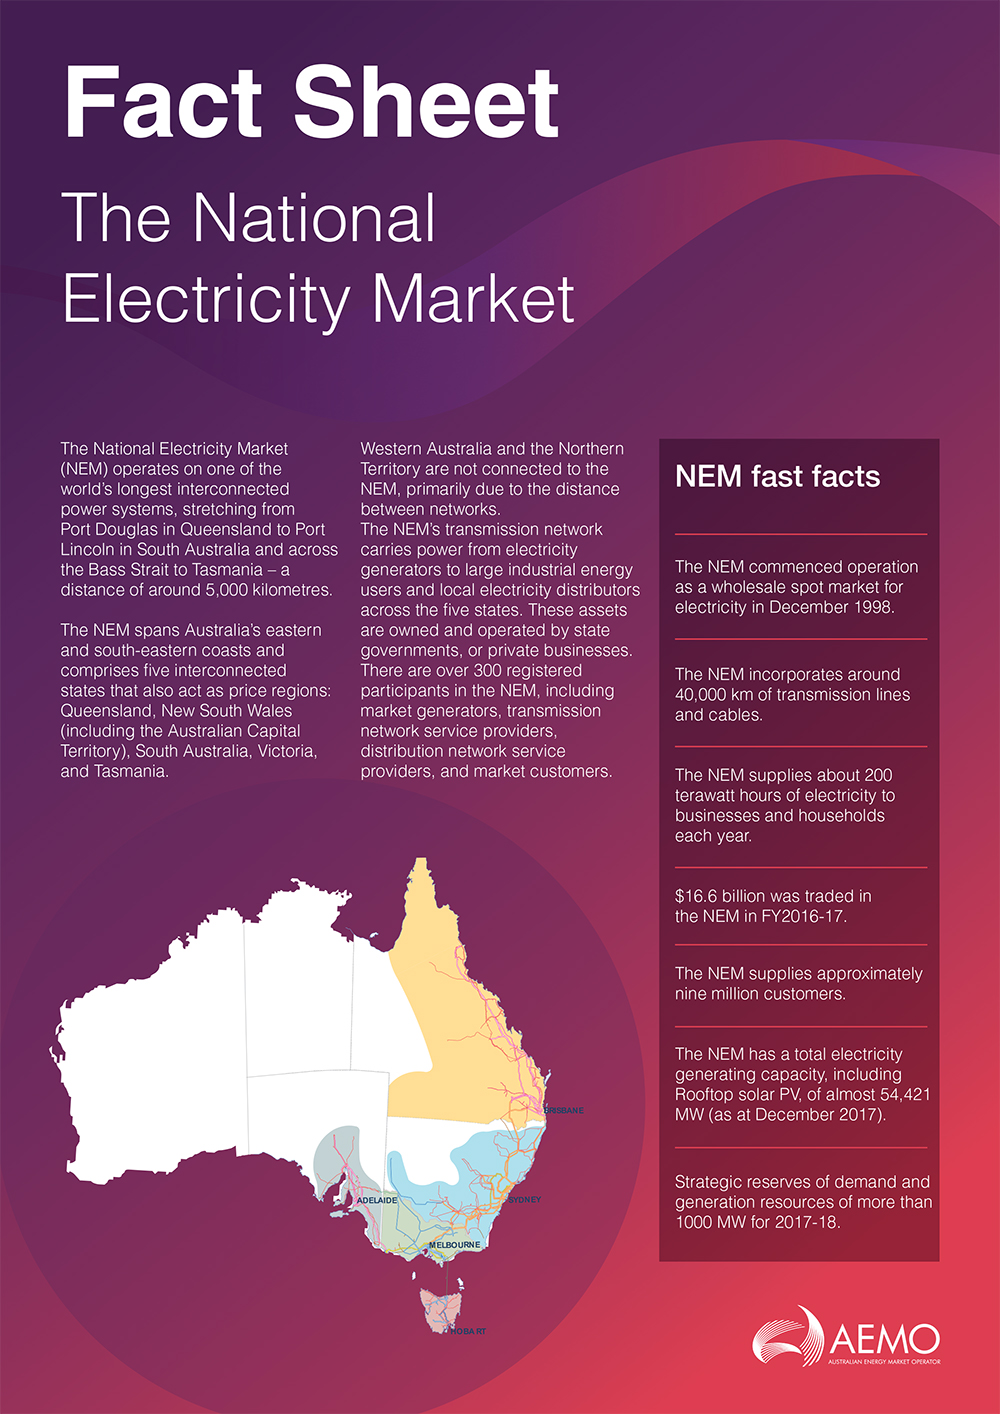 Factsheet: How the National Electricity Market works